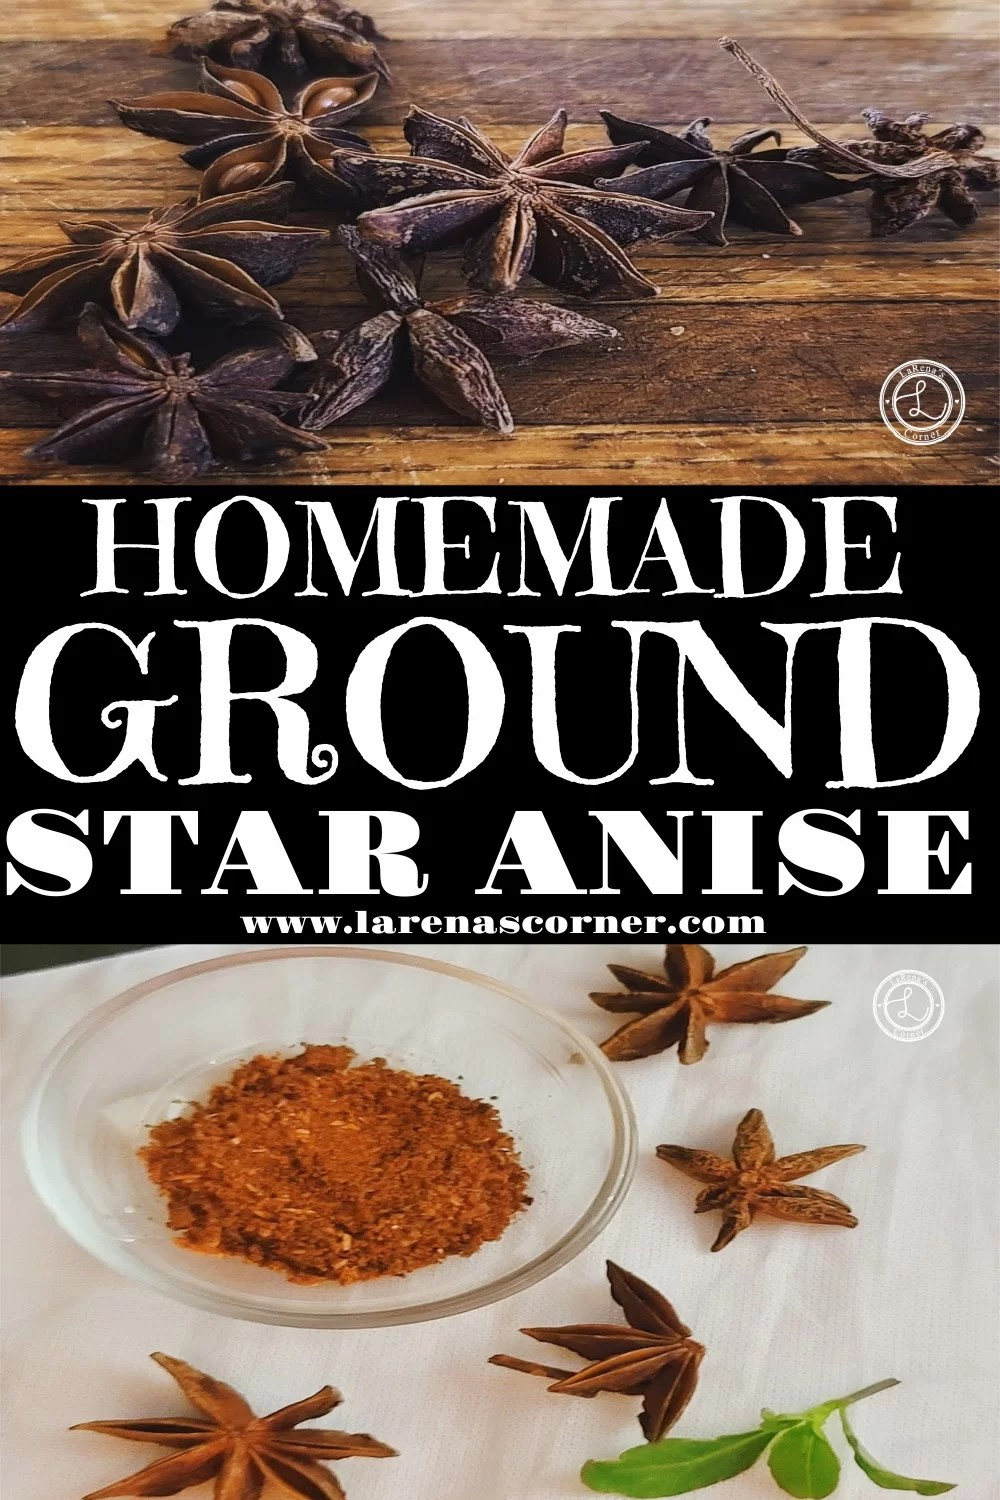 Star Anise and Ground spice